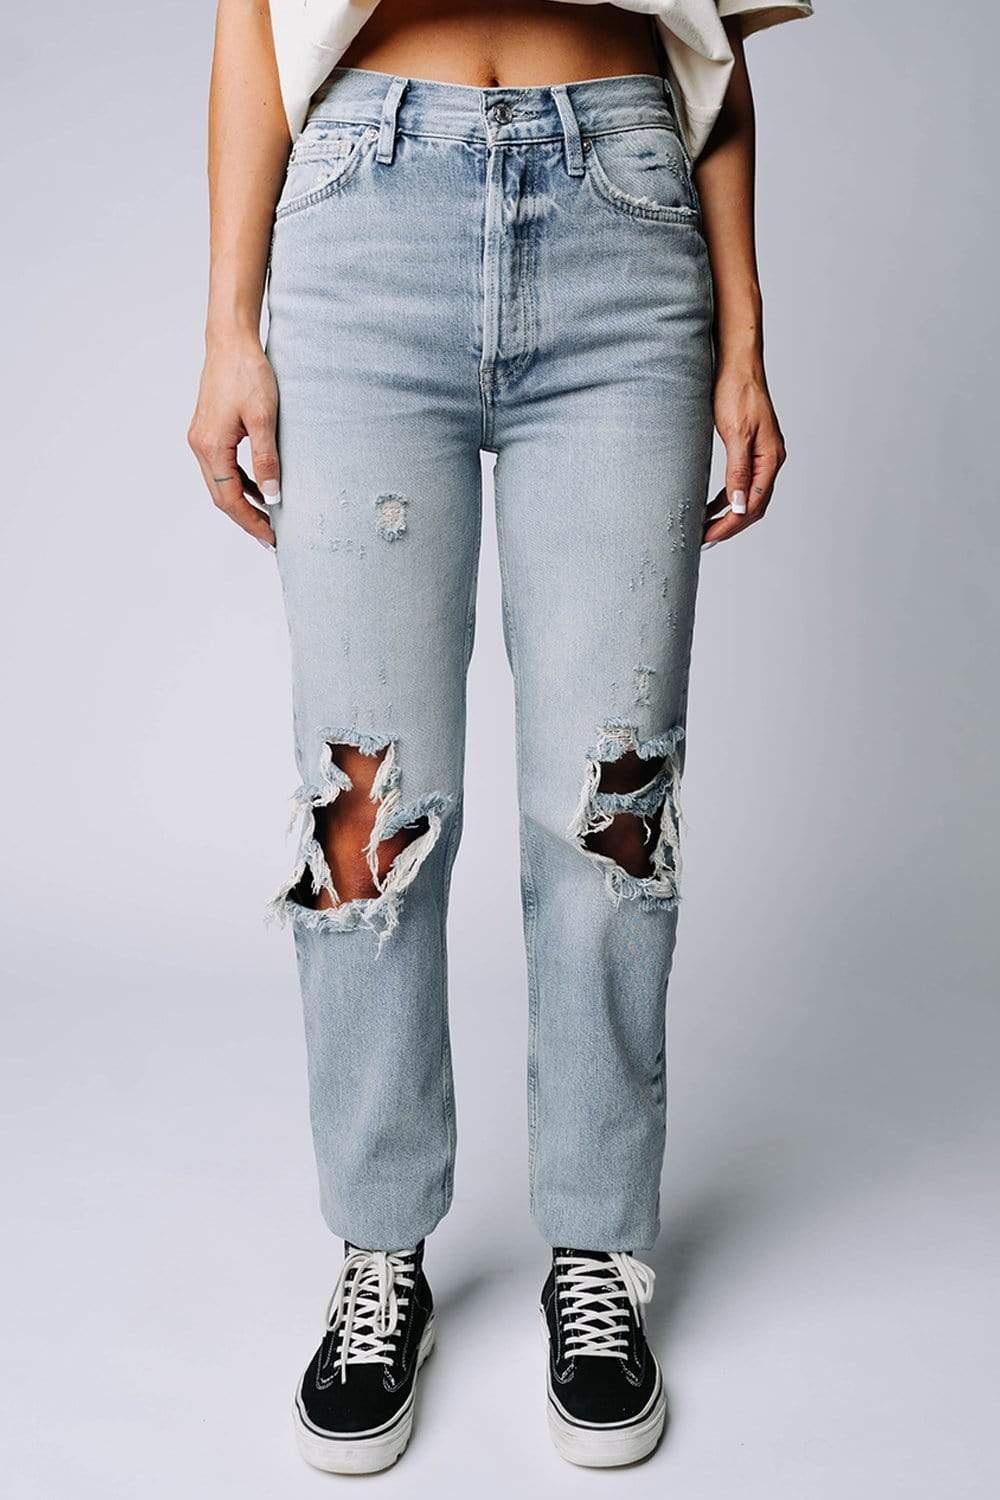 Free People Lasso Jean in Foxtrot Light Wash